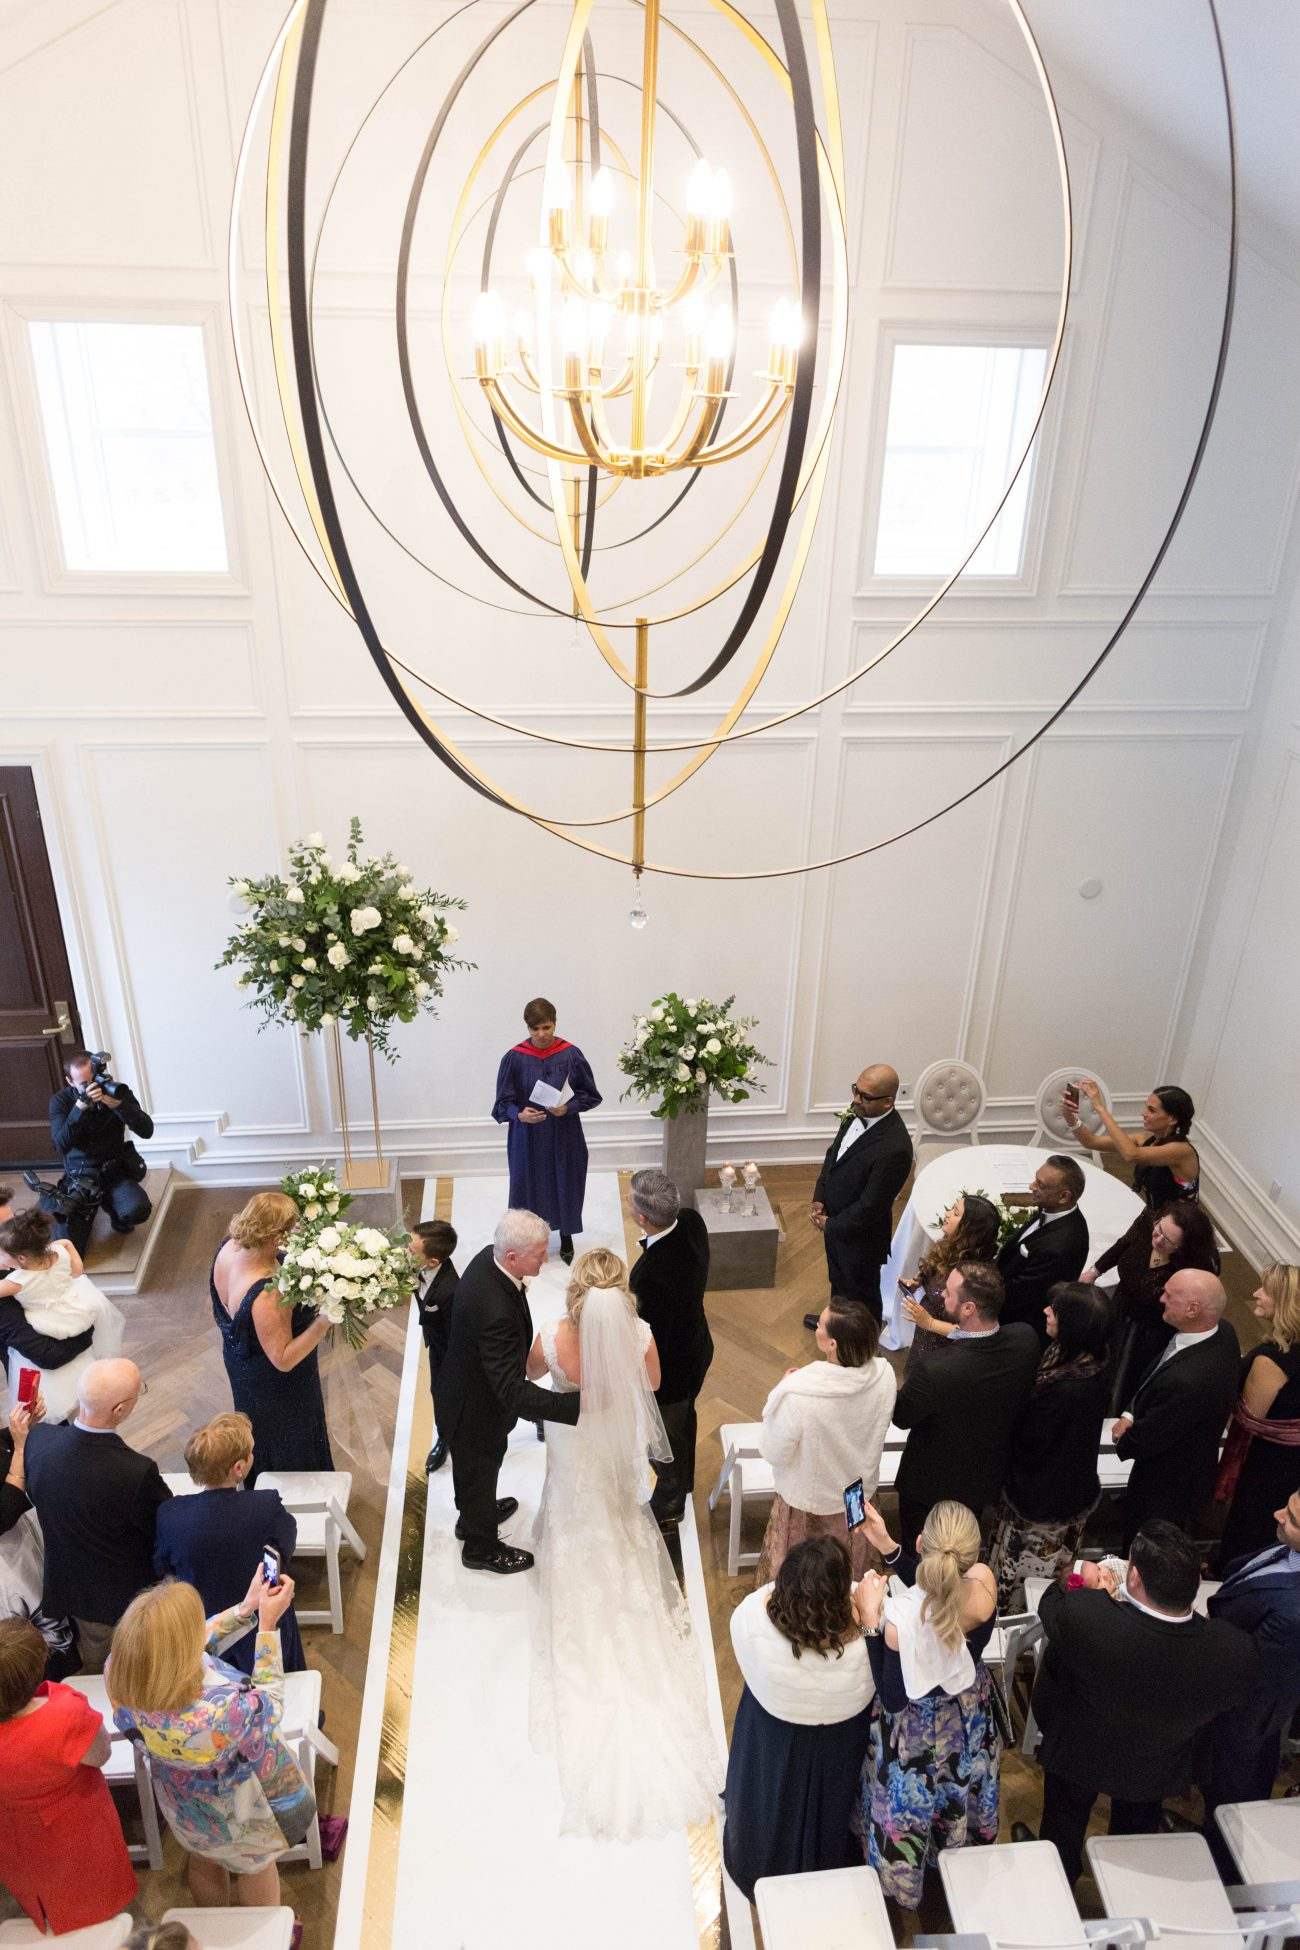 Wedding ceremony at the Heritage House Chapel